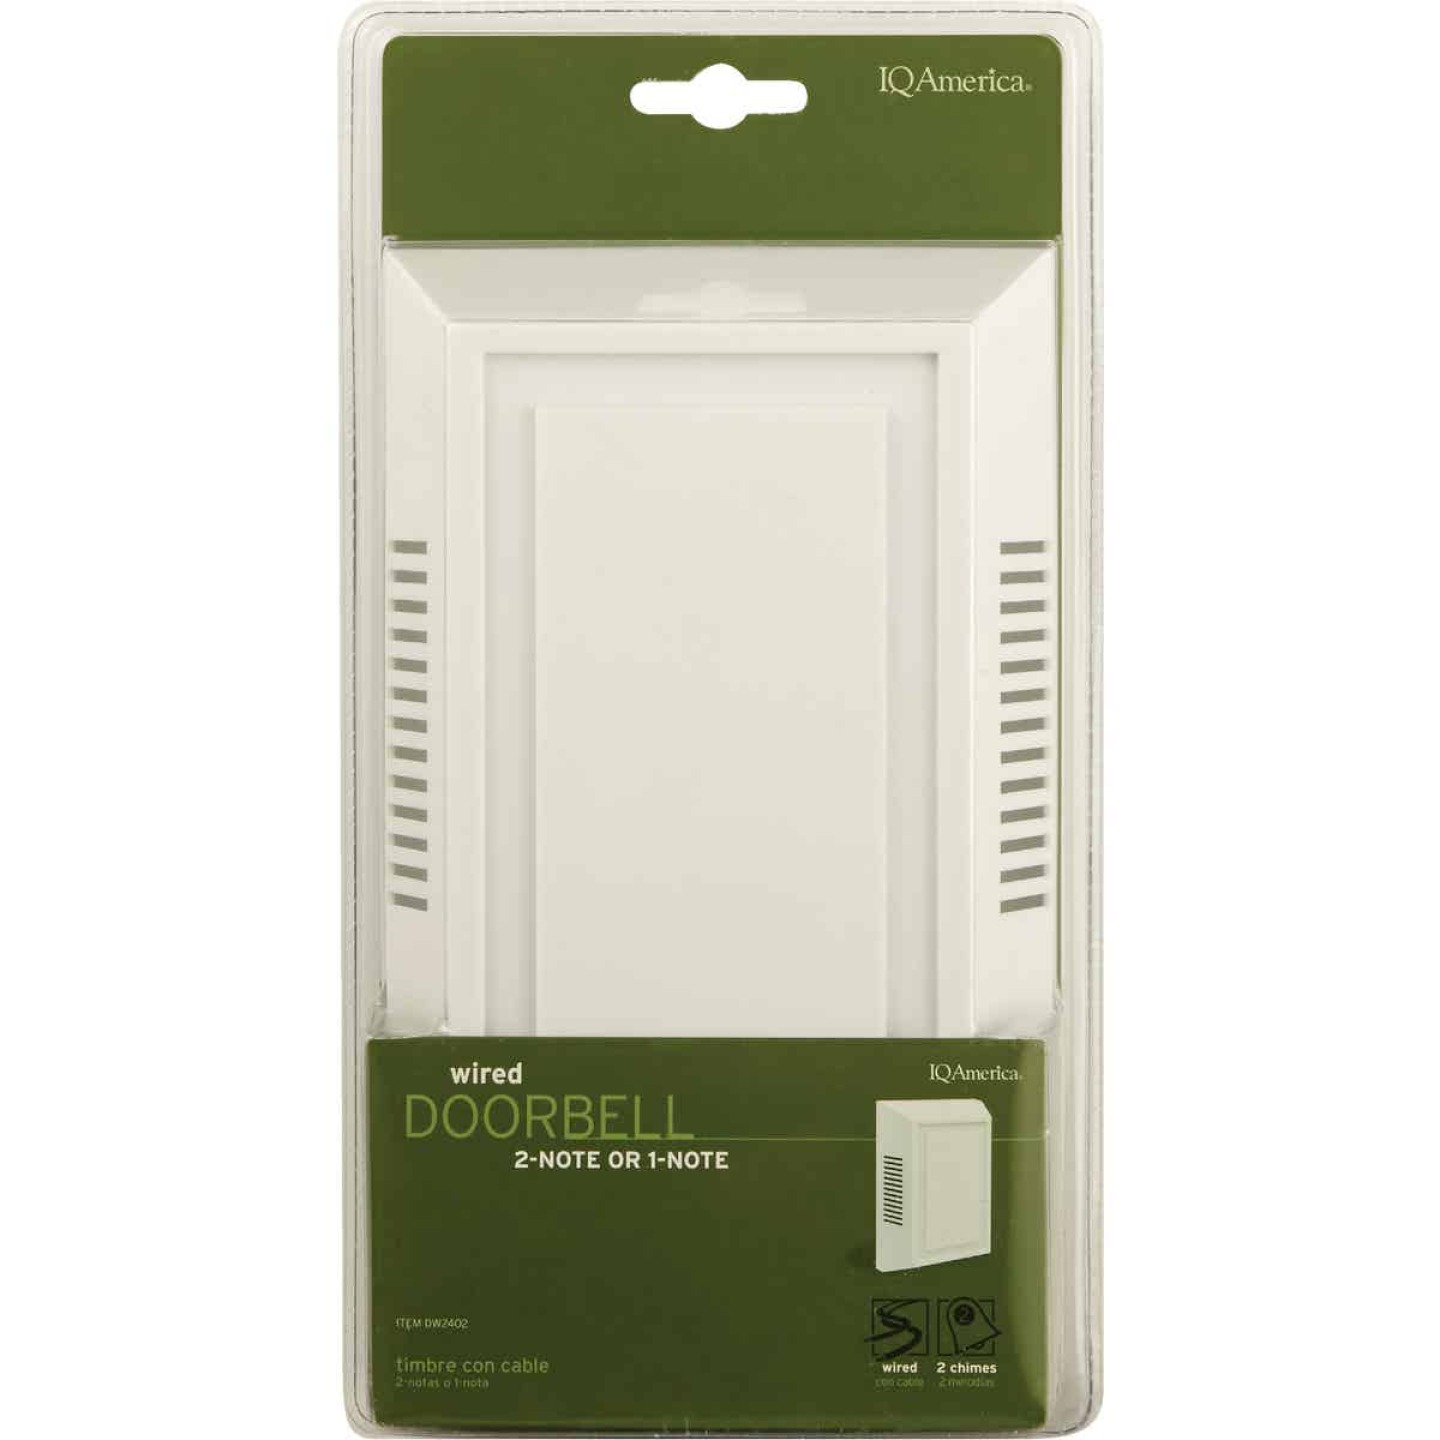 IQ America Wired White Contemporary Door Chime Image 2